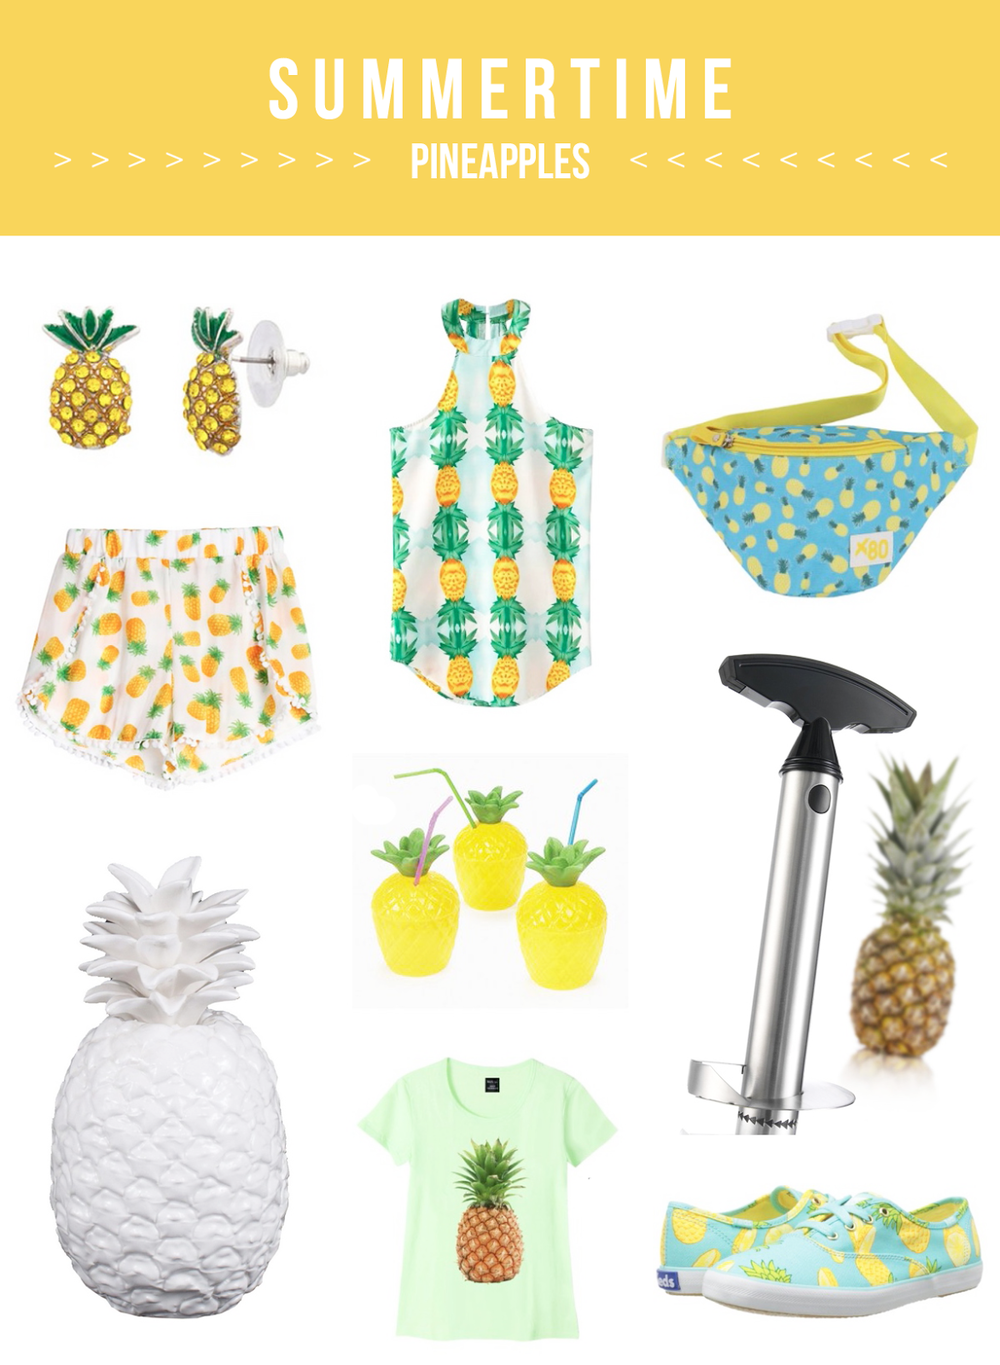 pineapple-products-amazon-summer.png